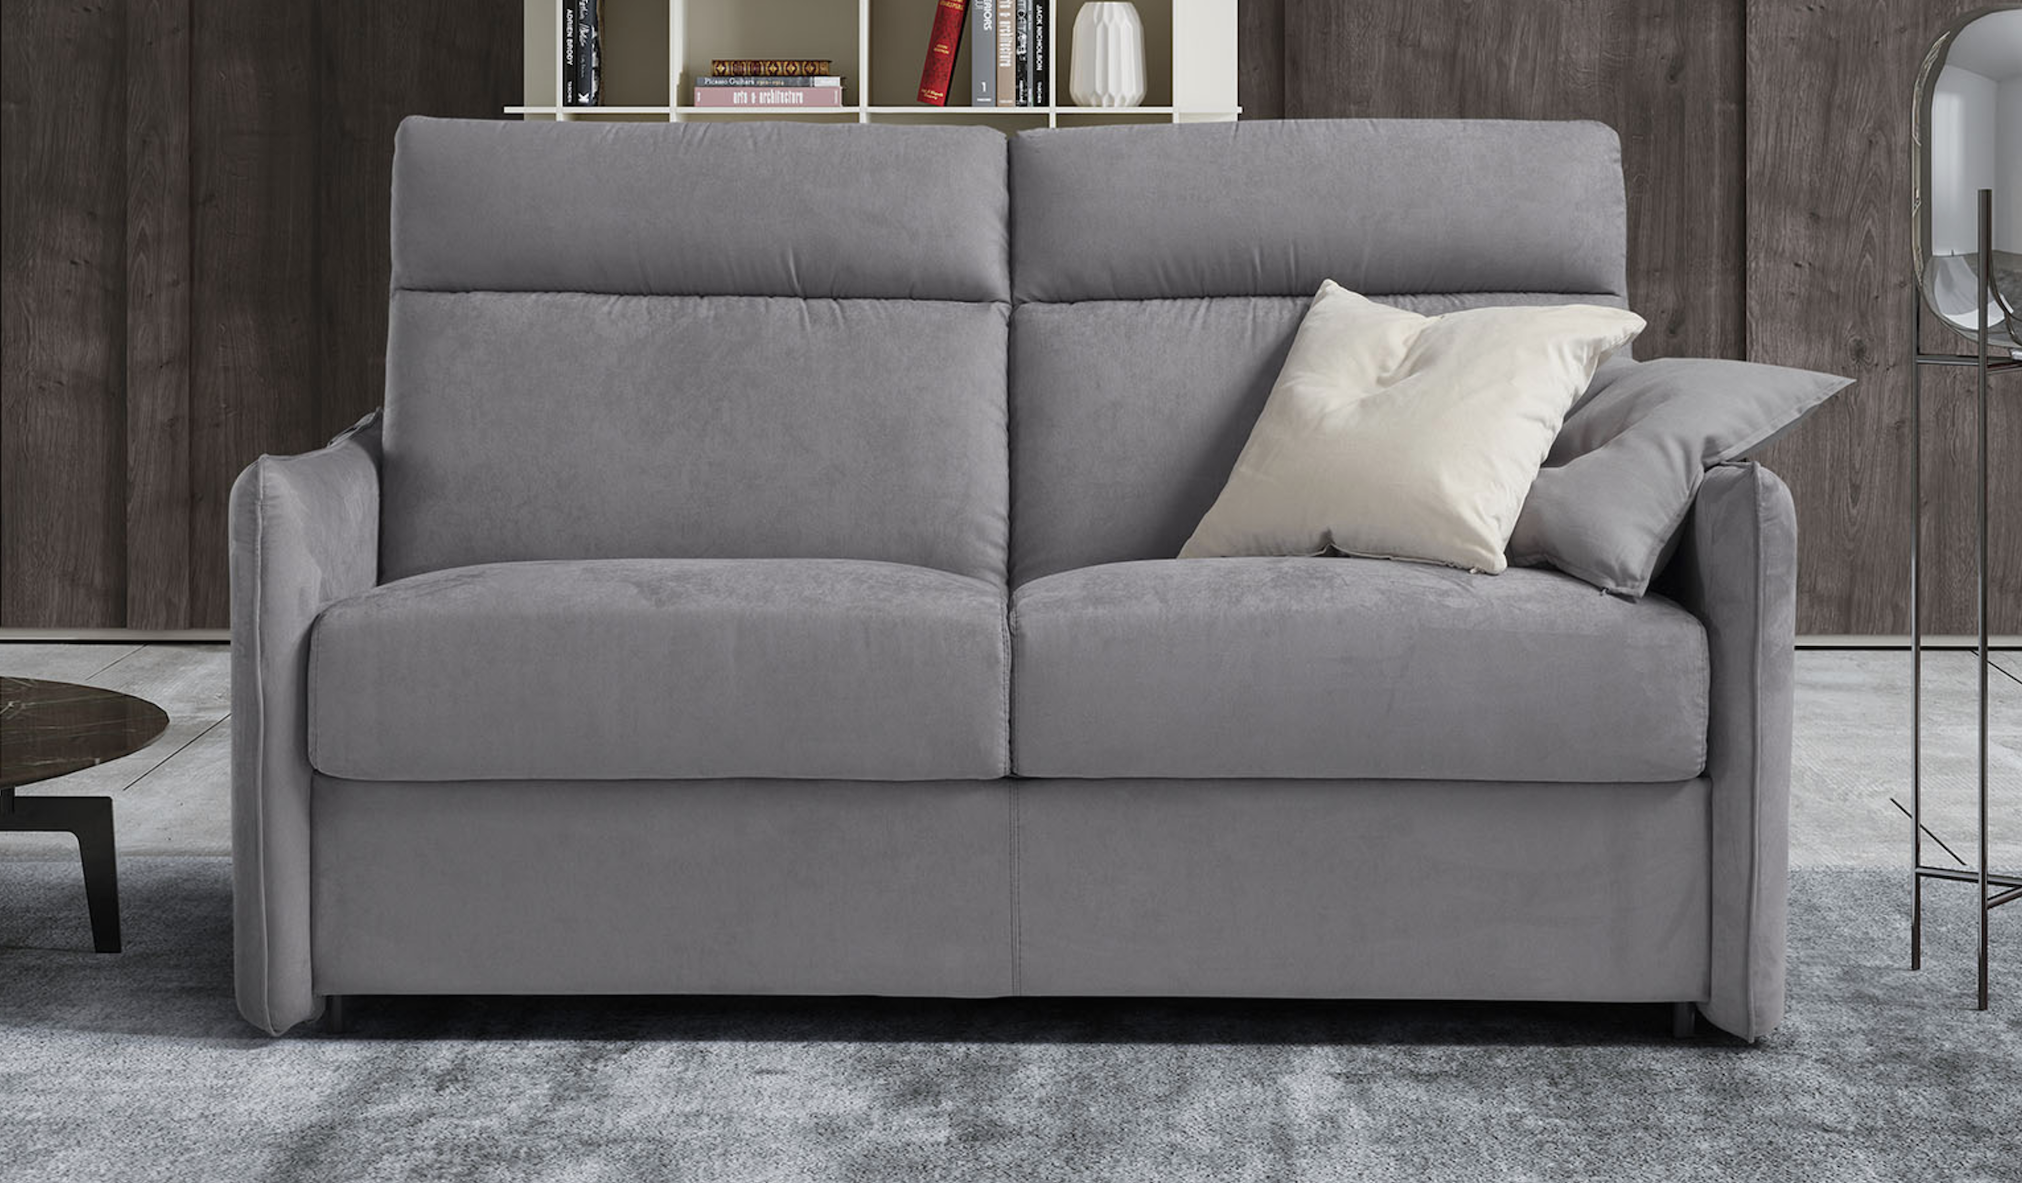 AIMEE Italian Crafted 3 Seat Sofa Bed in PLAZA SILVER RRP £1979 - Image 2 of 5